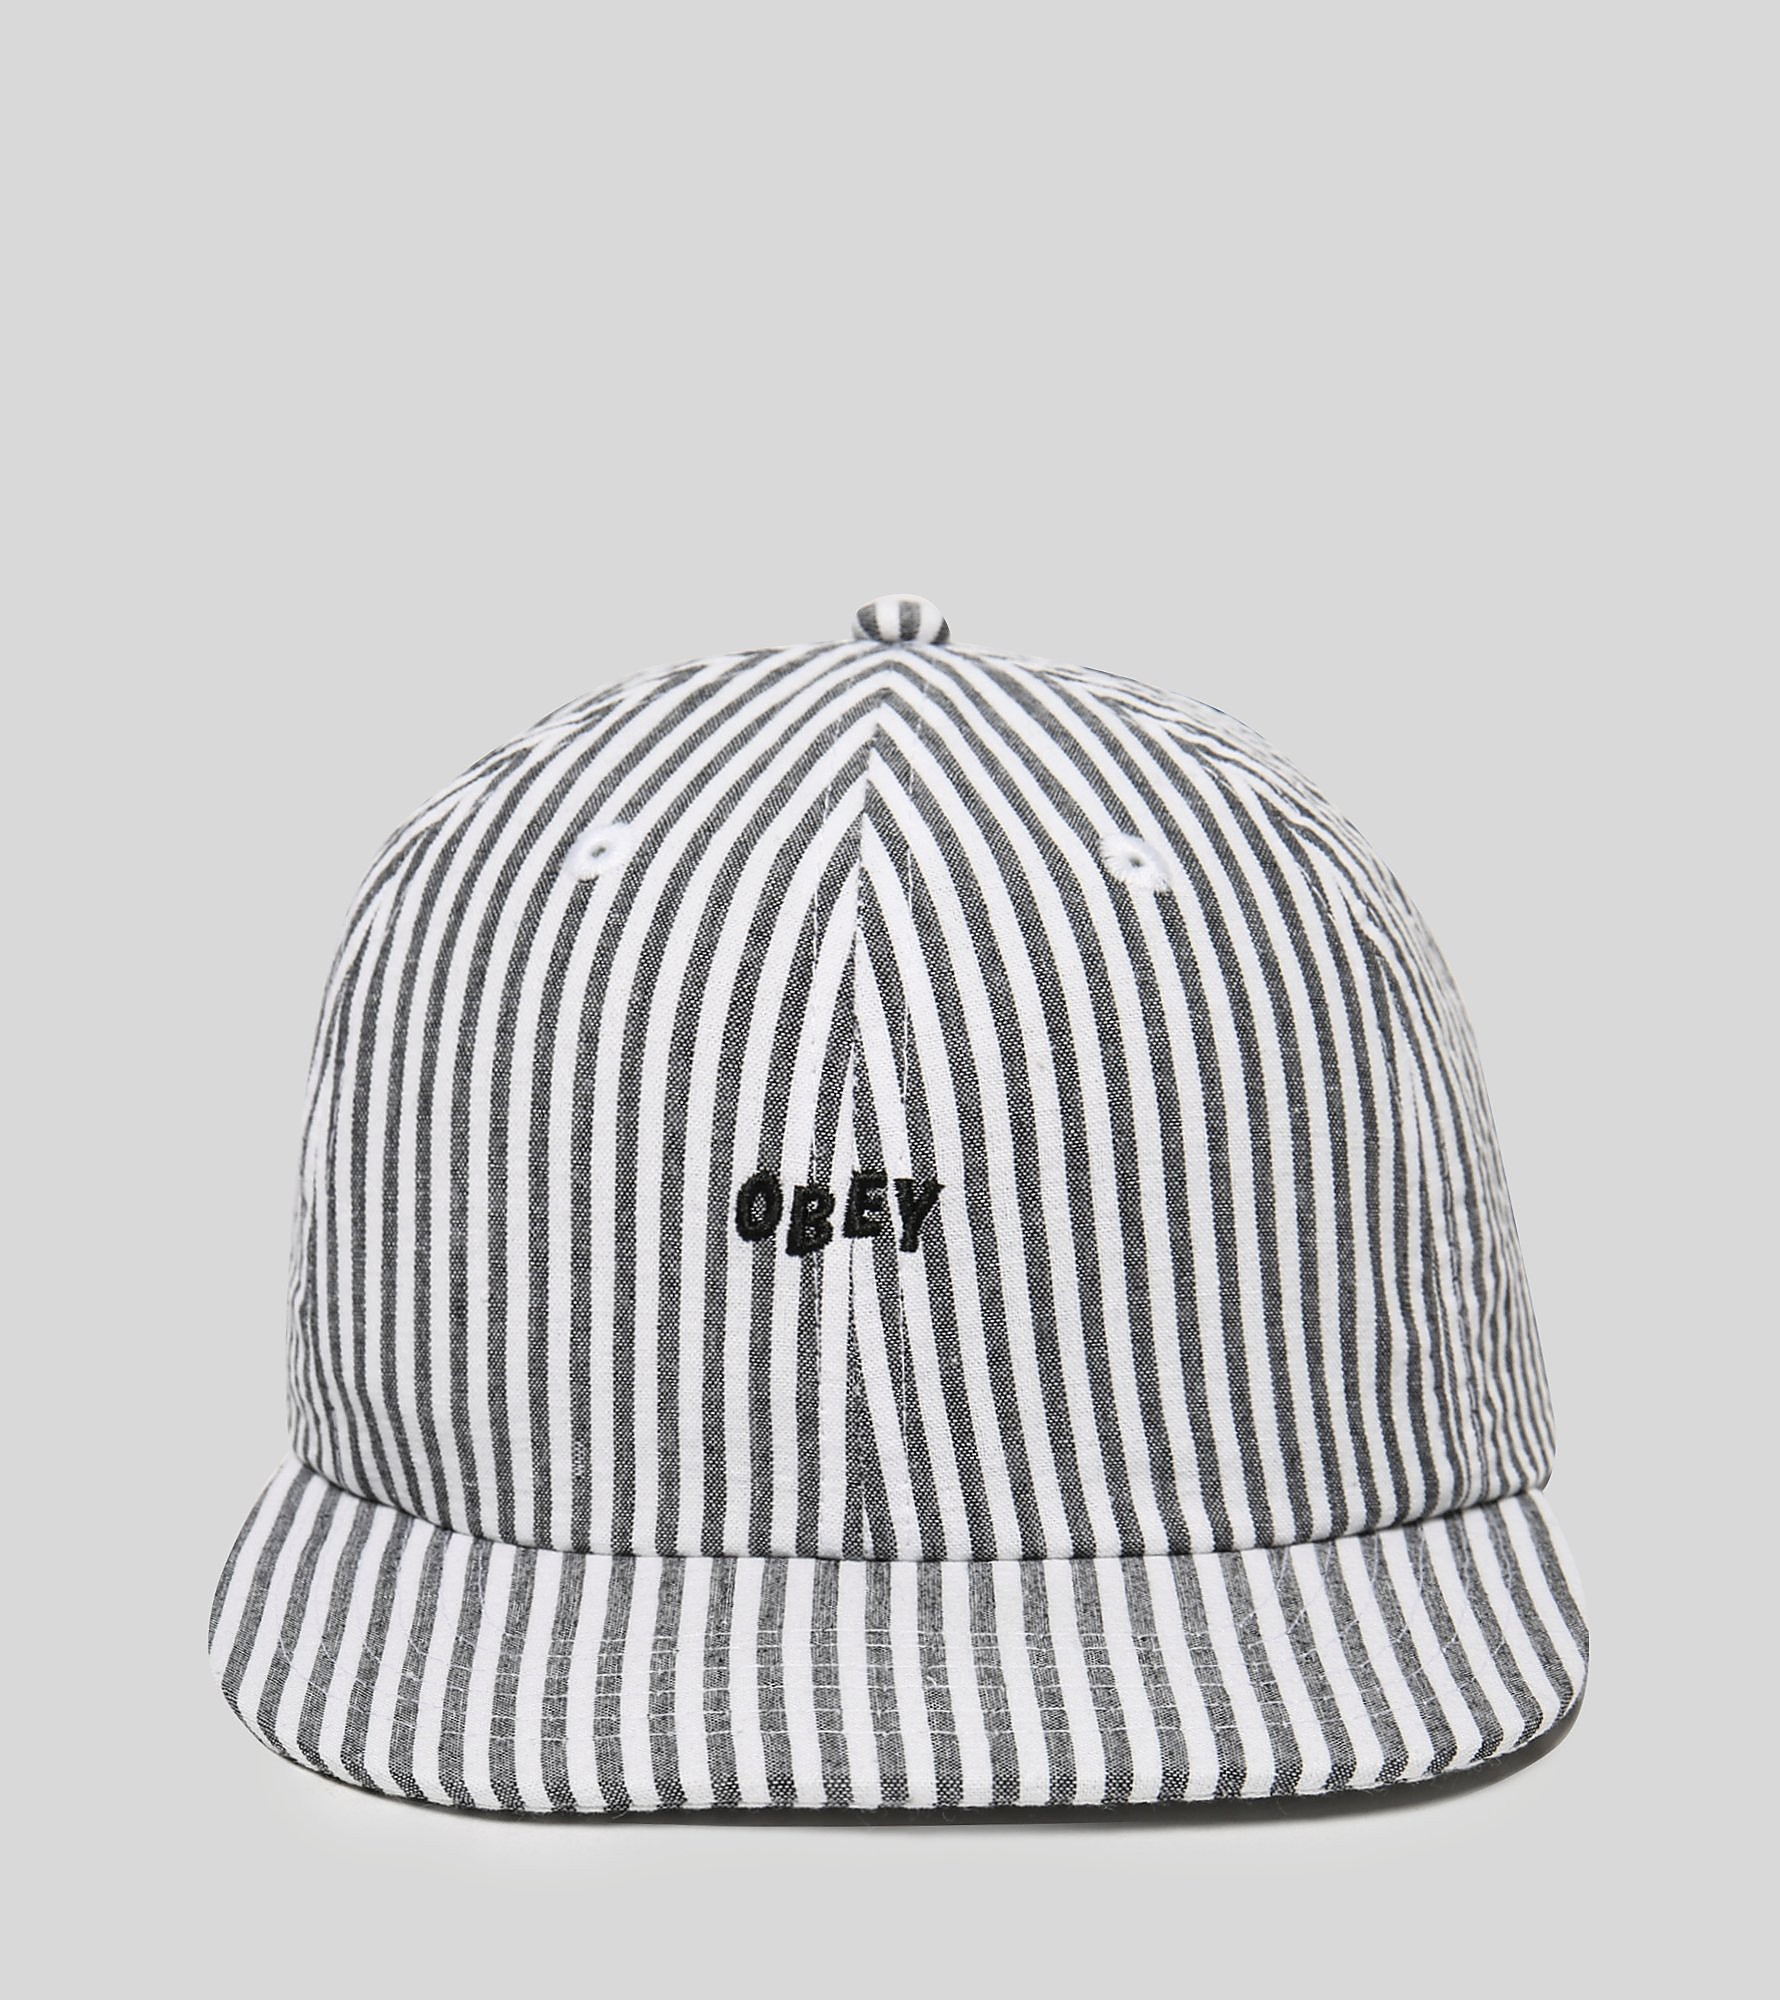 Obey Casquette Cypress